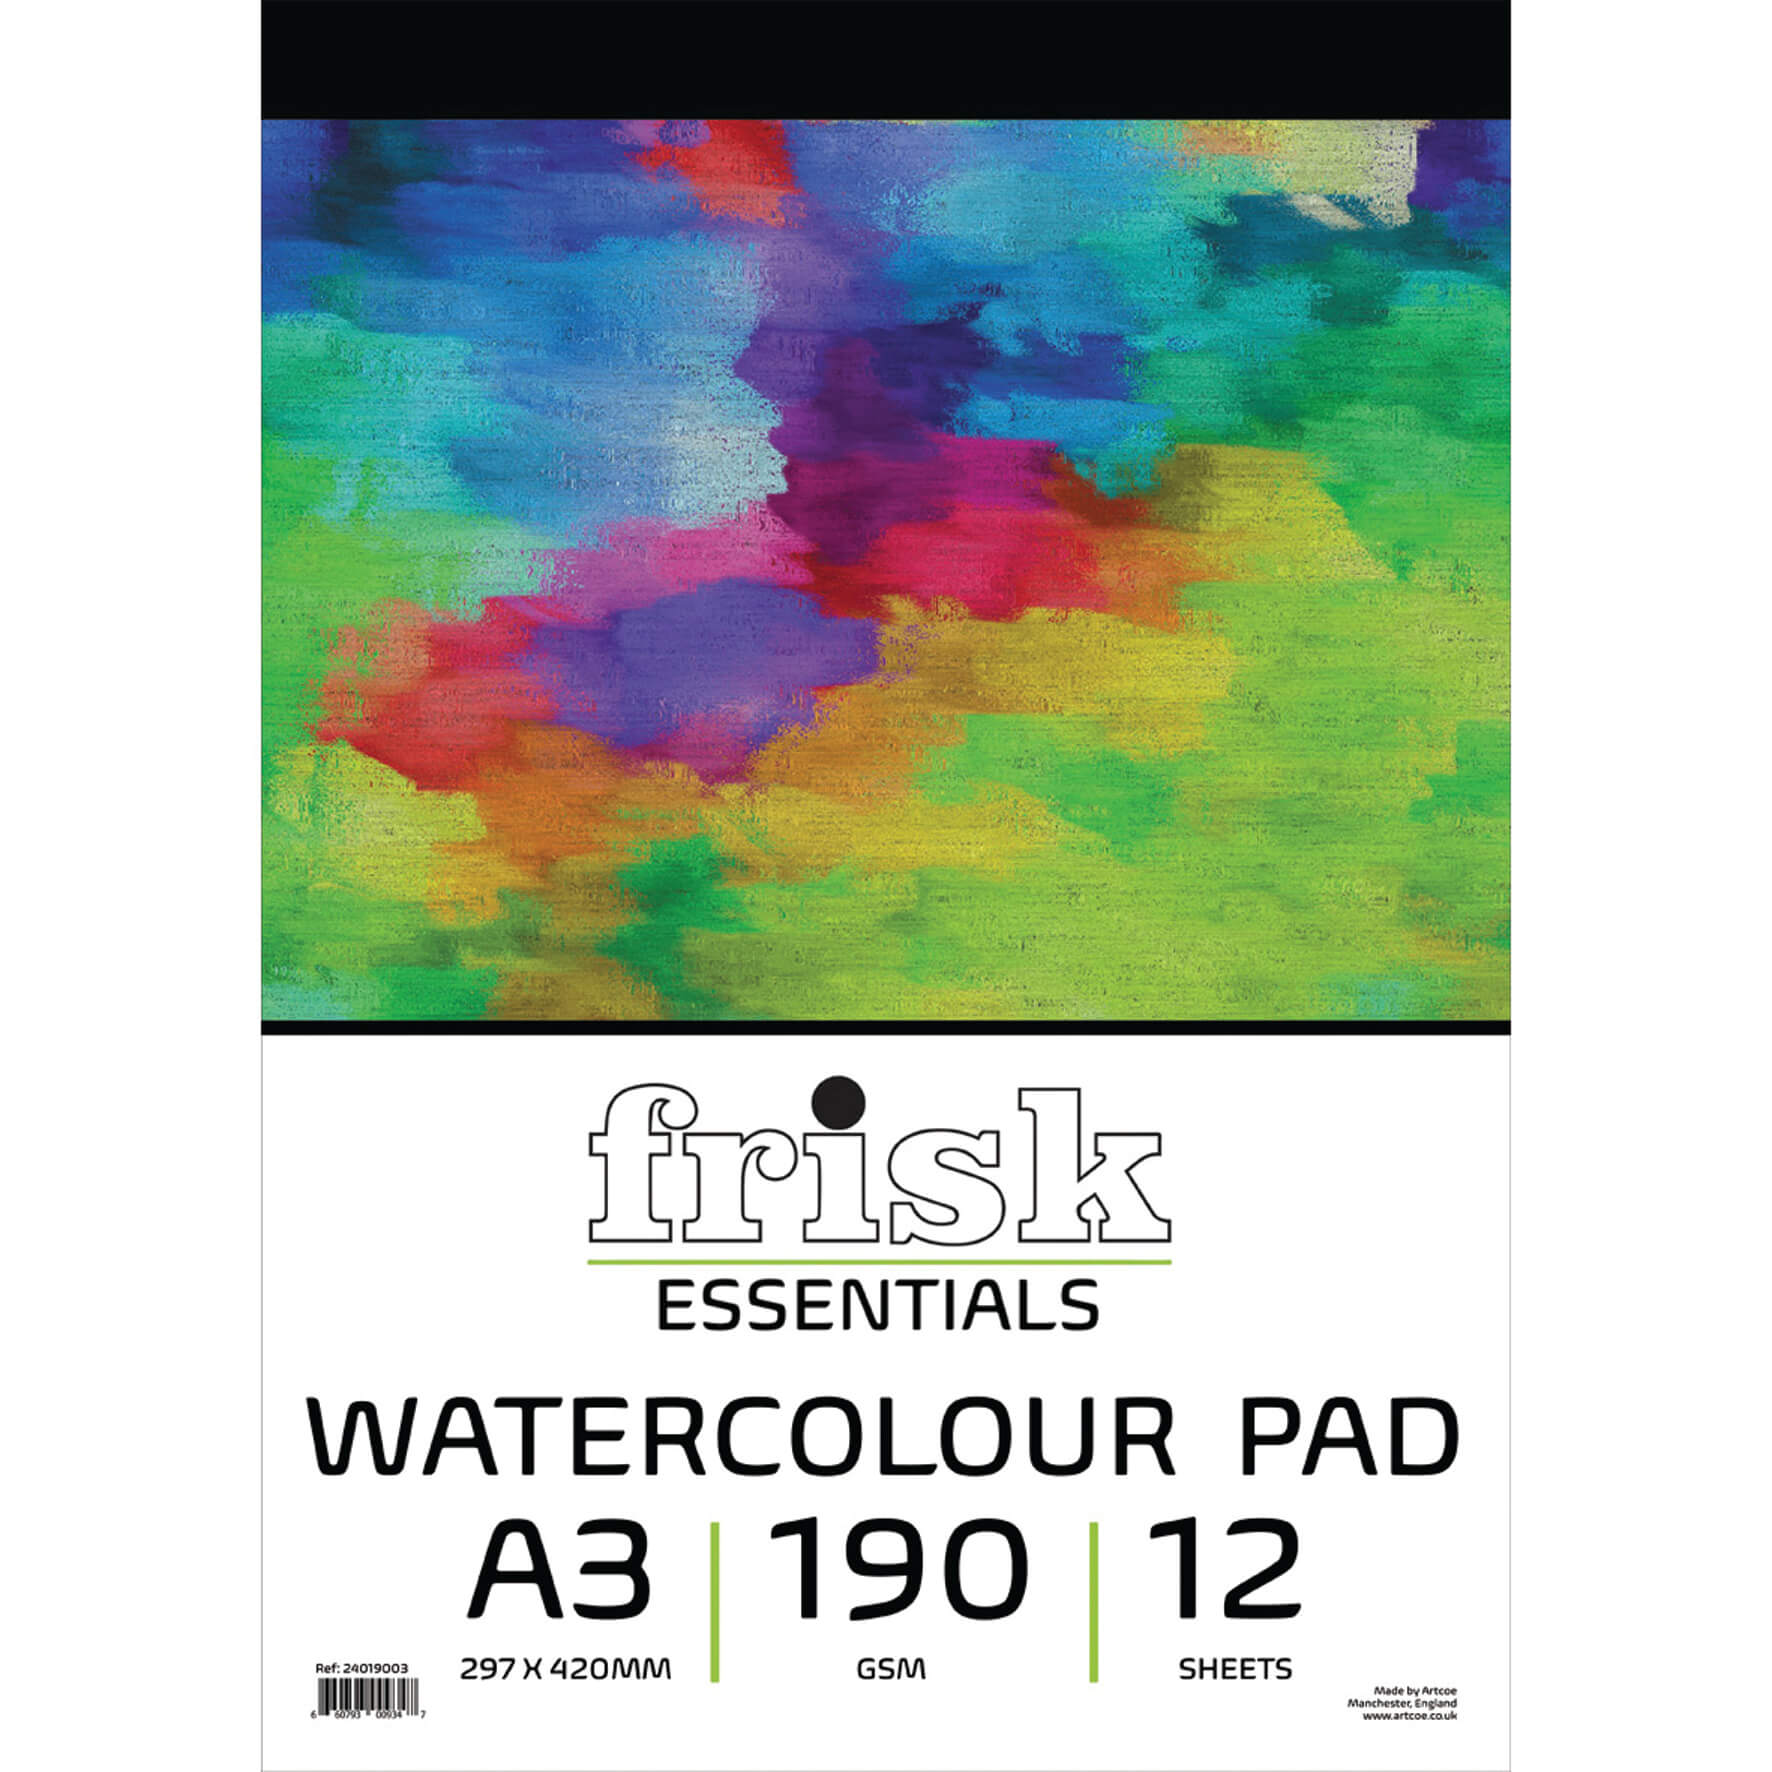 Watercolour Paper Pad A3 190gsm - 12 Sheets